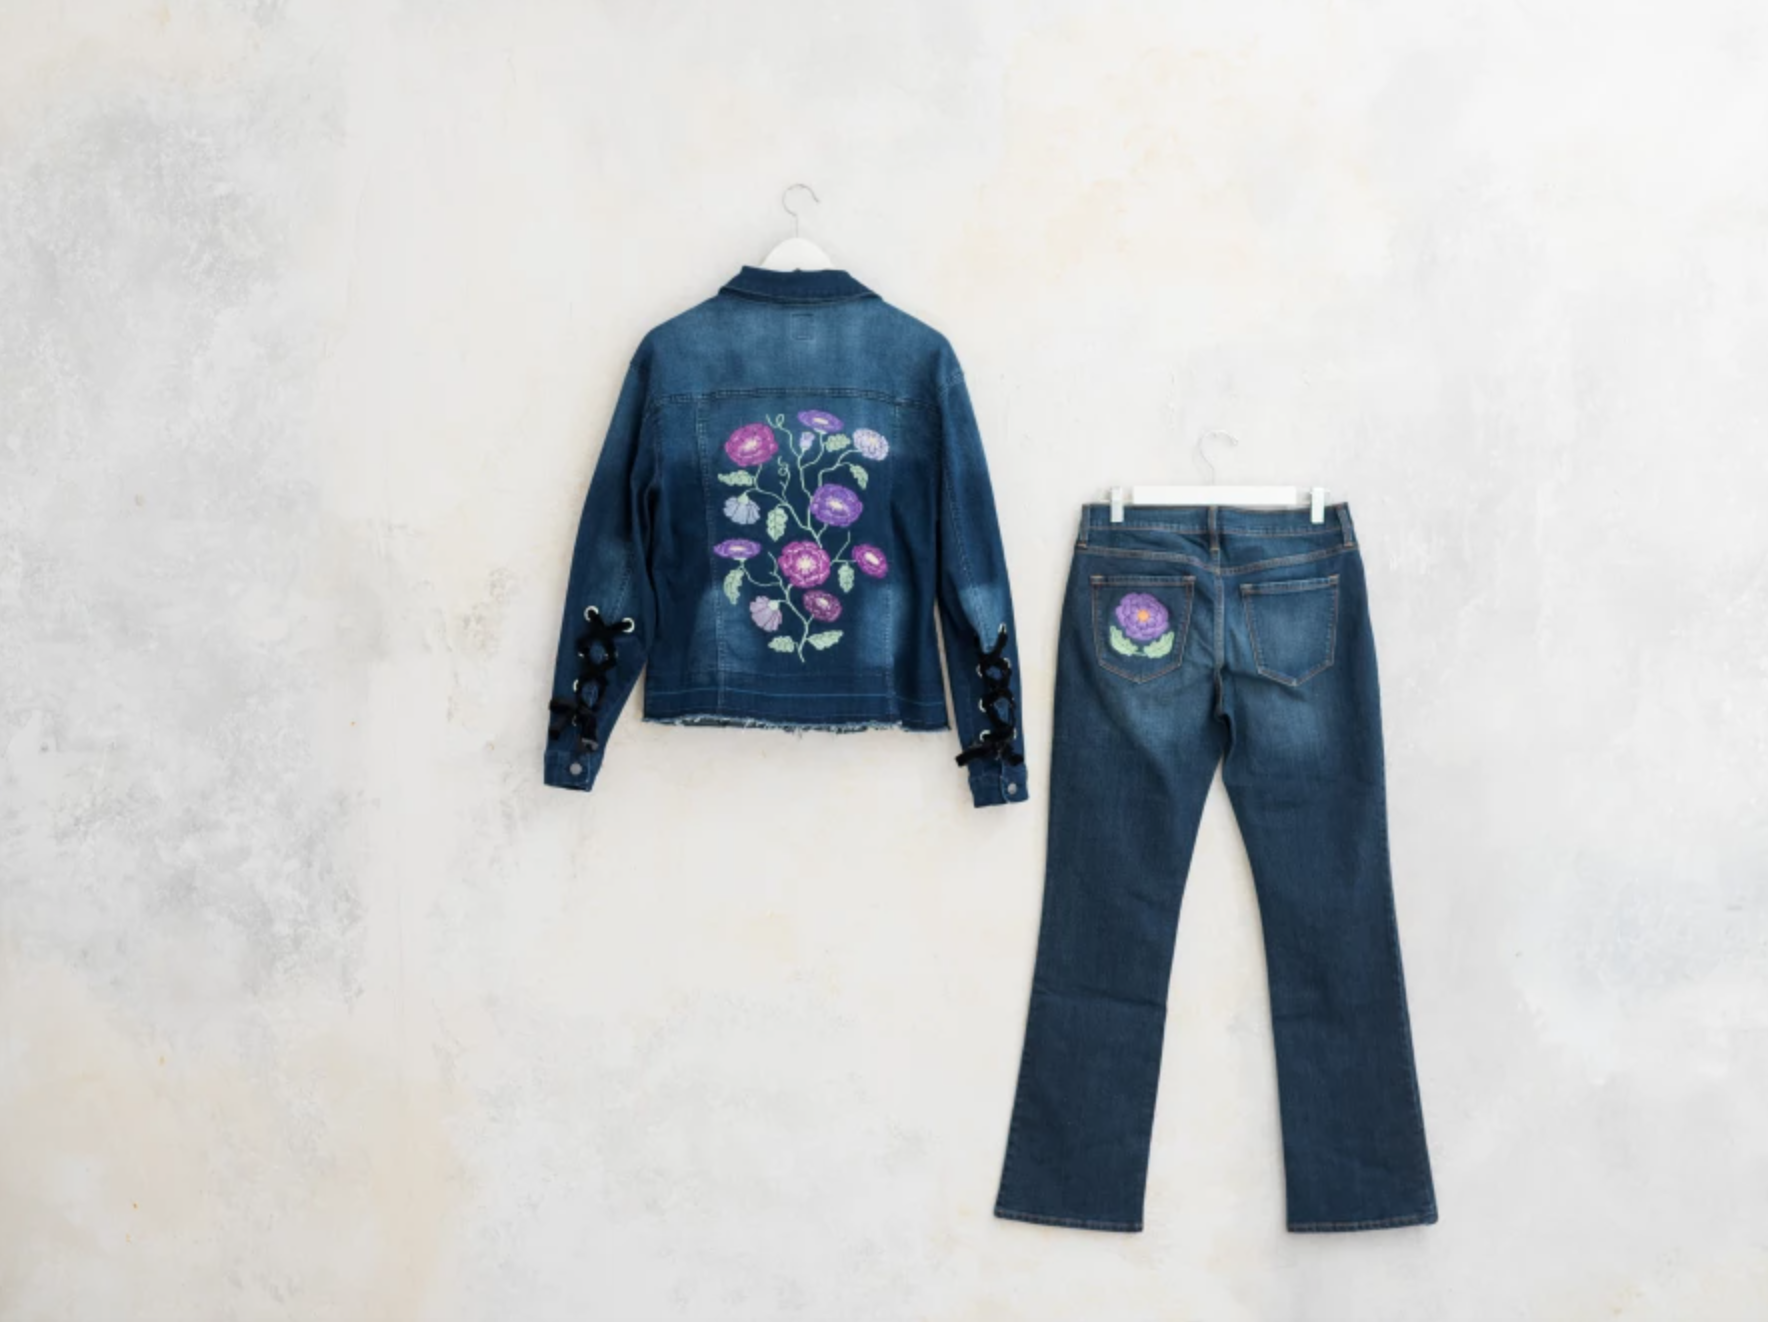 embroidered denim jacket and jeans